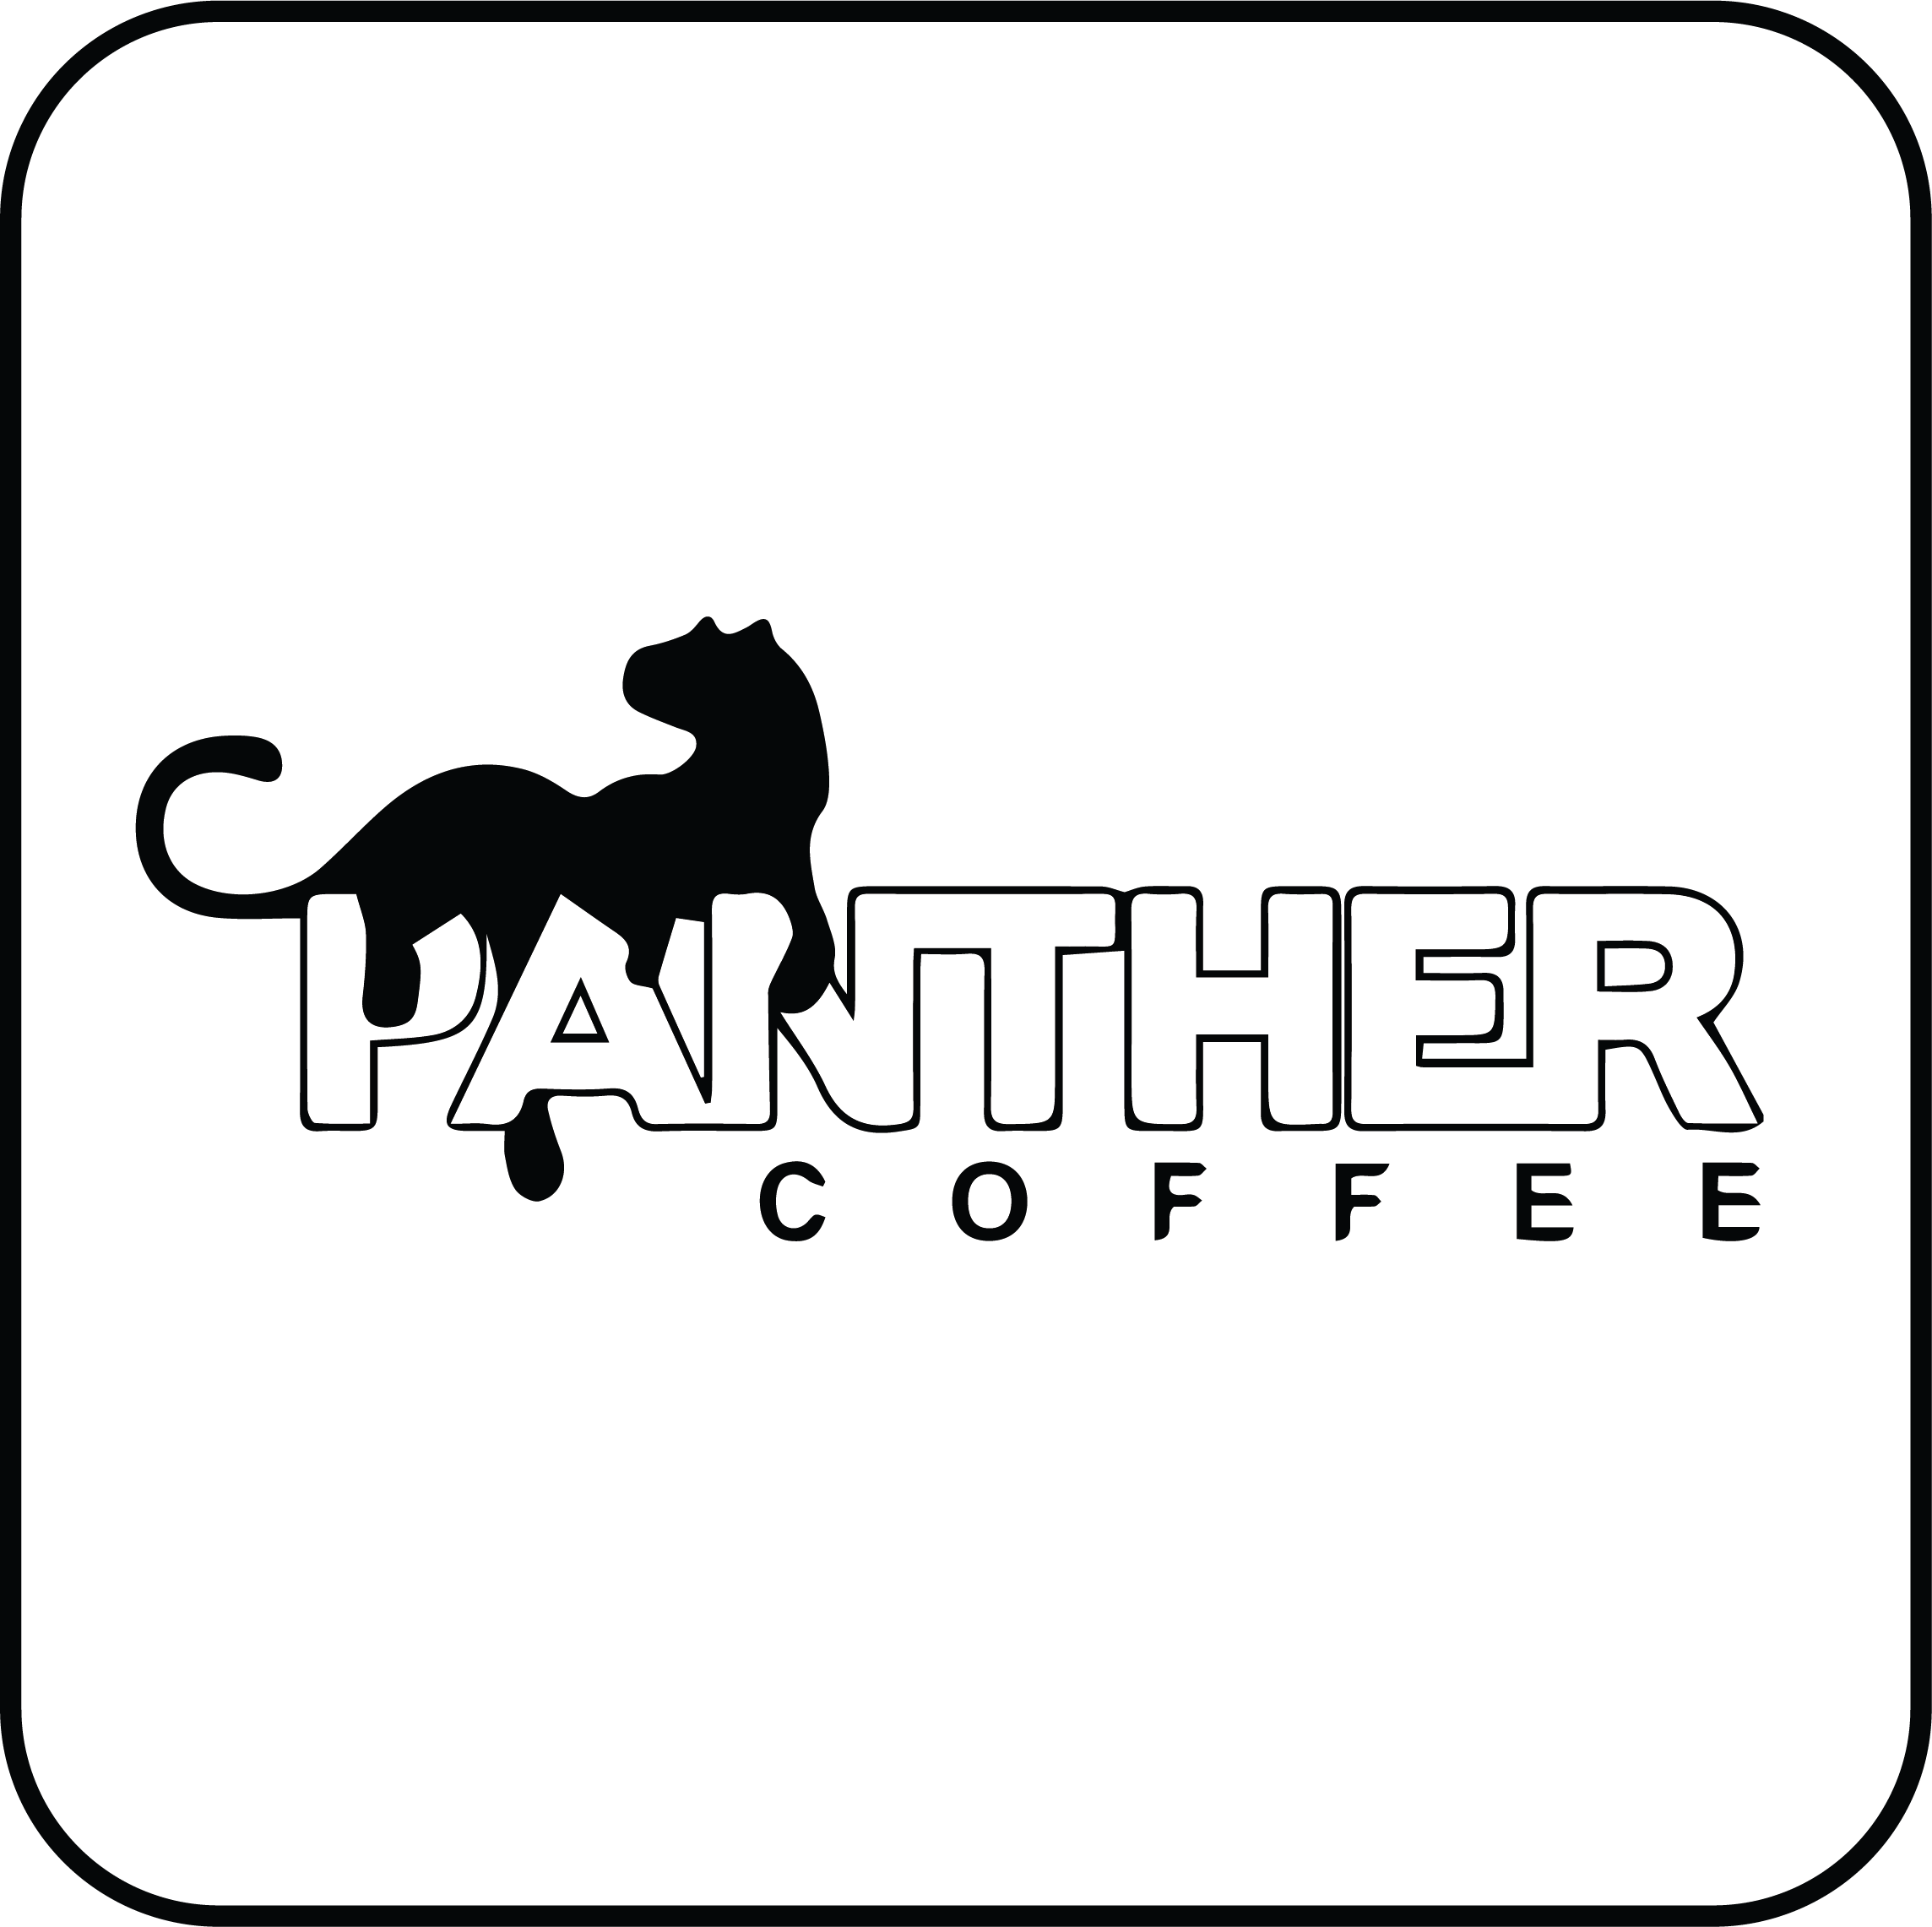 panther coffee logo